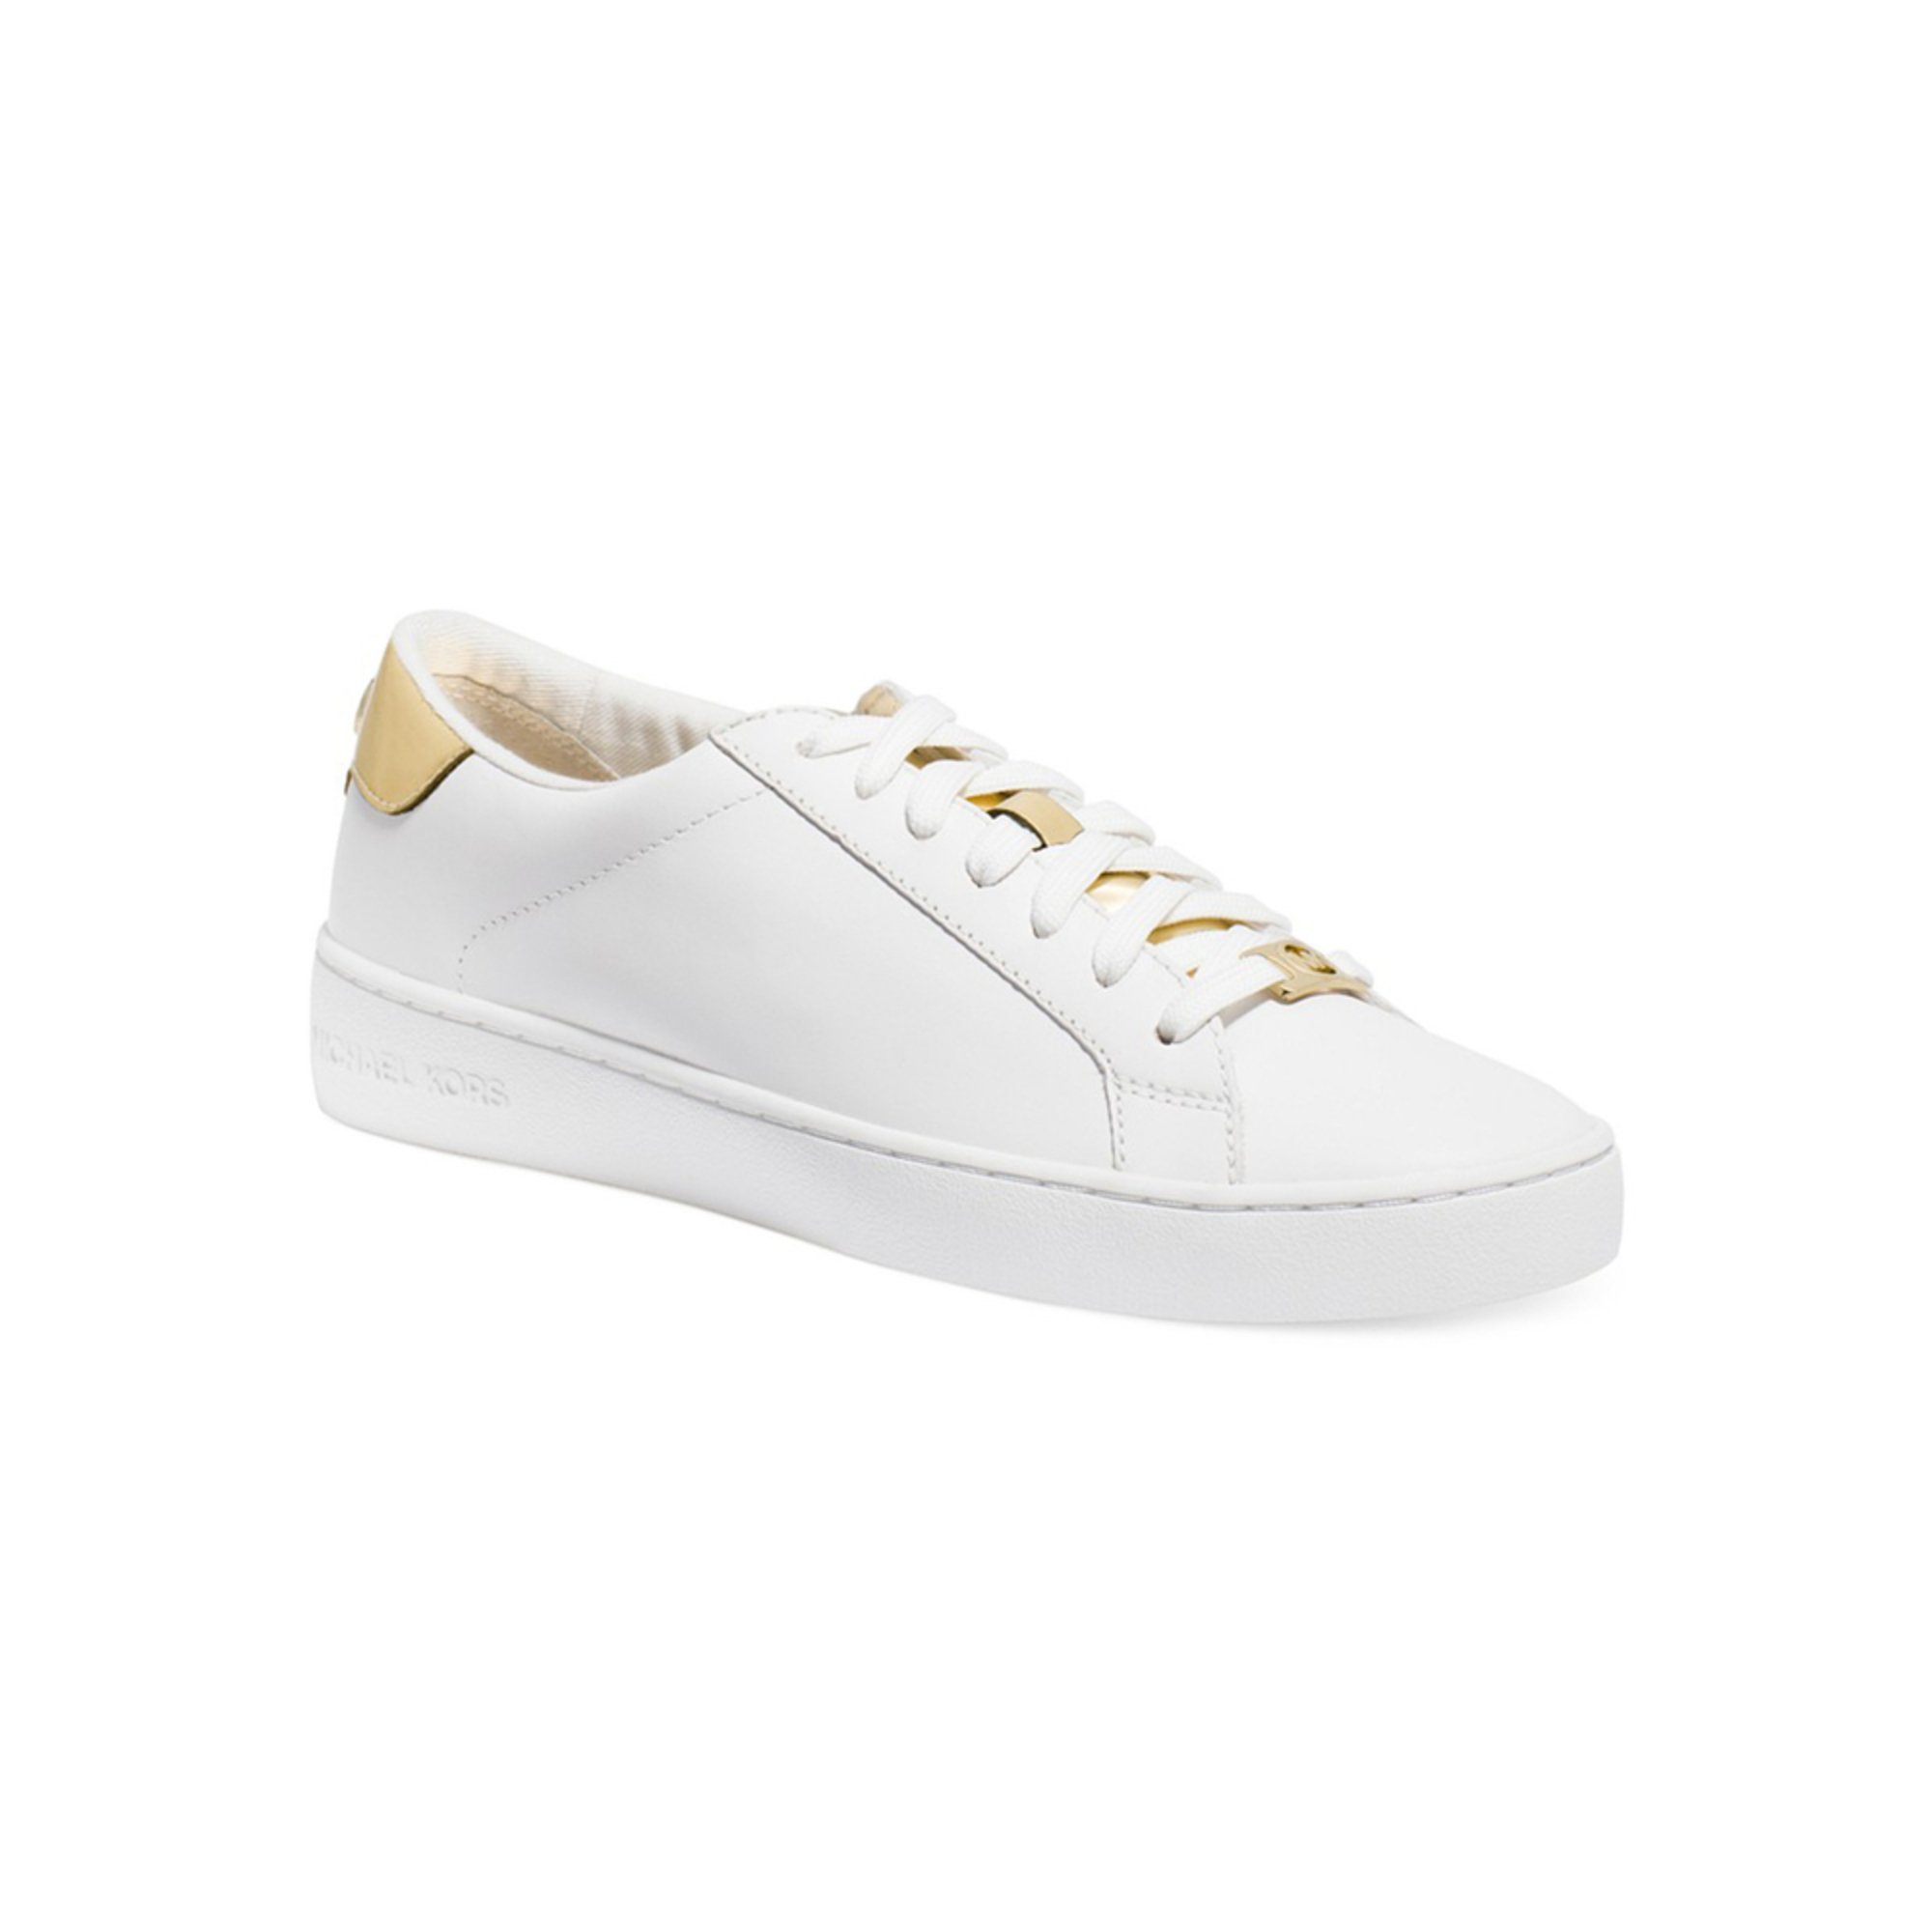 michael kors irving lace up sneaker optic white pale gold. Black Bedroom Furniture Sets. Home Design Ideas